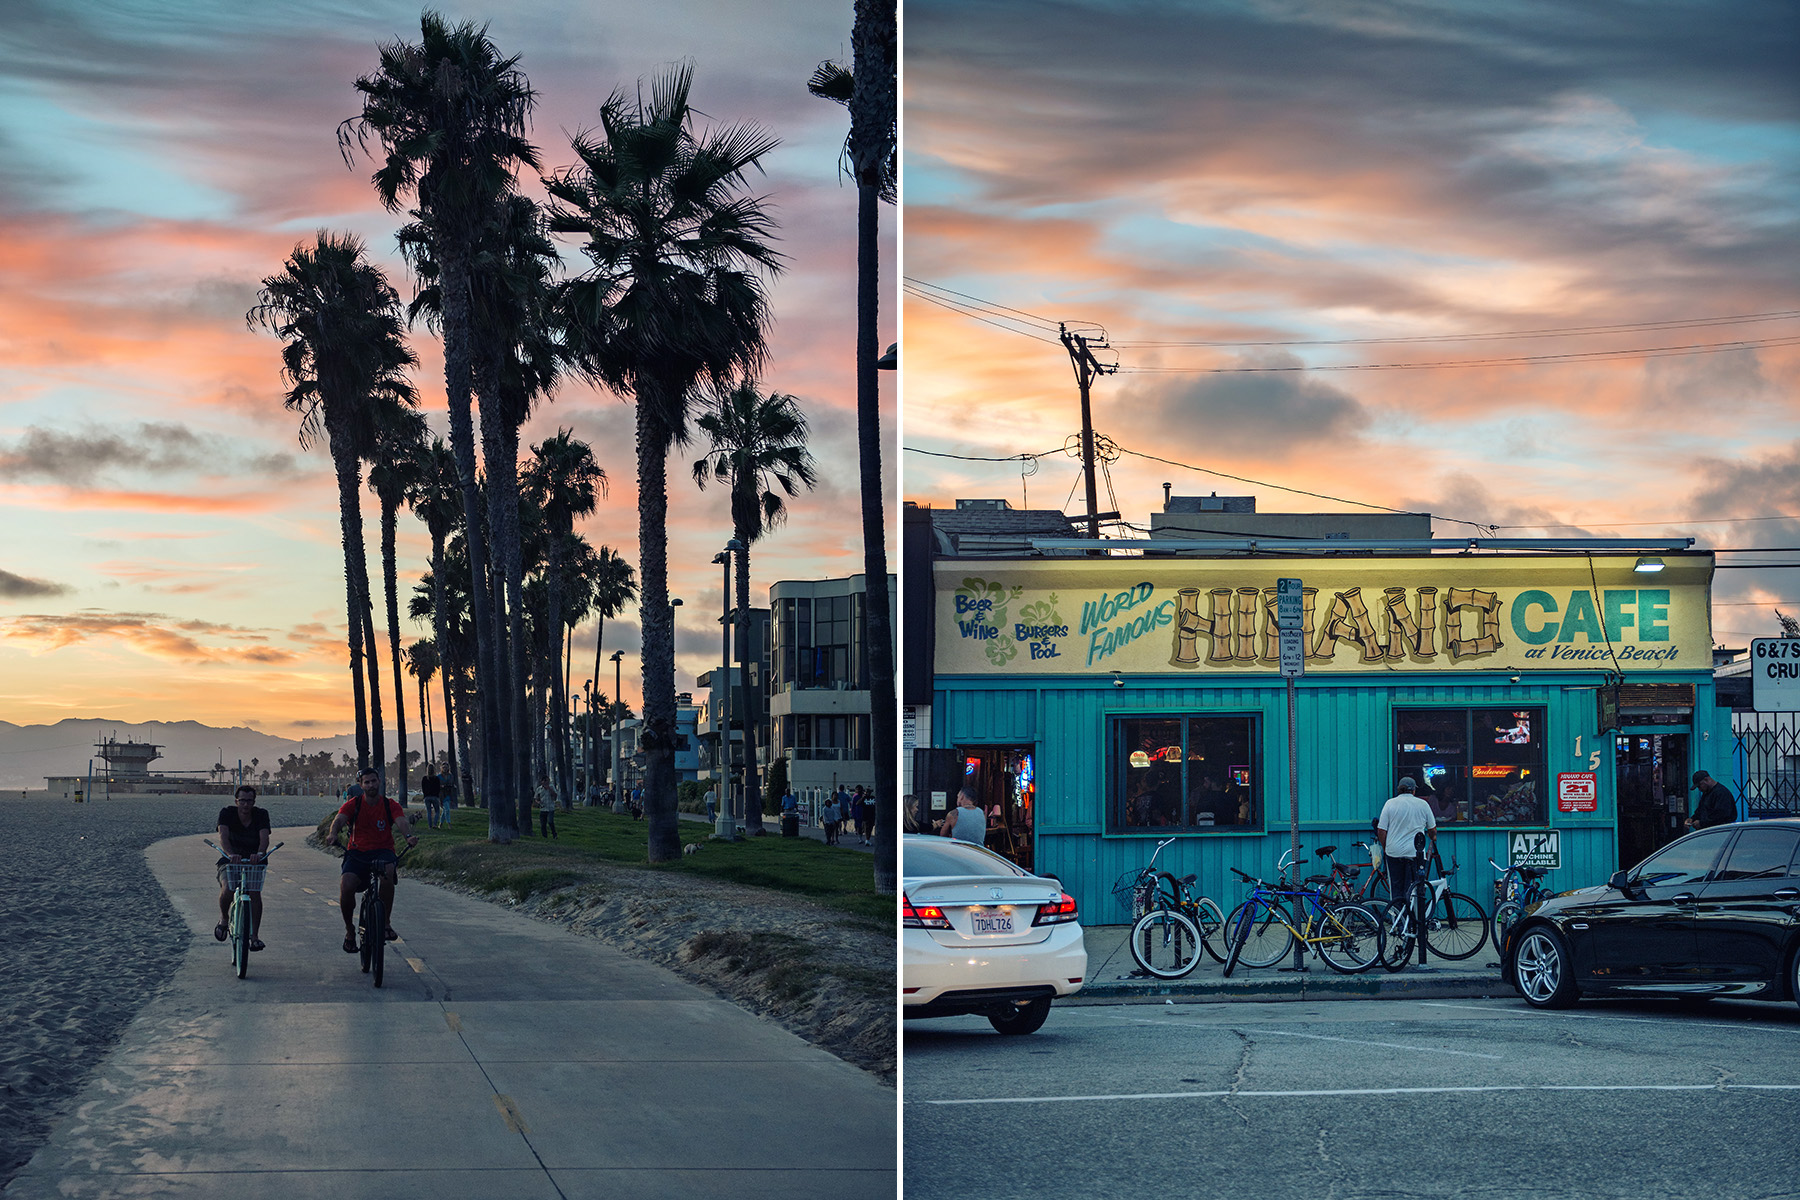 left: Cyclists on the biking path at dusk | right: World Famous Hinano Cafe At Dusk